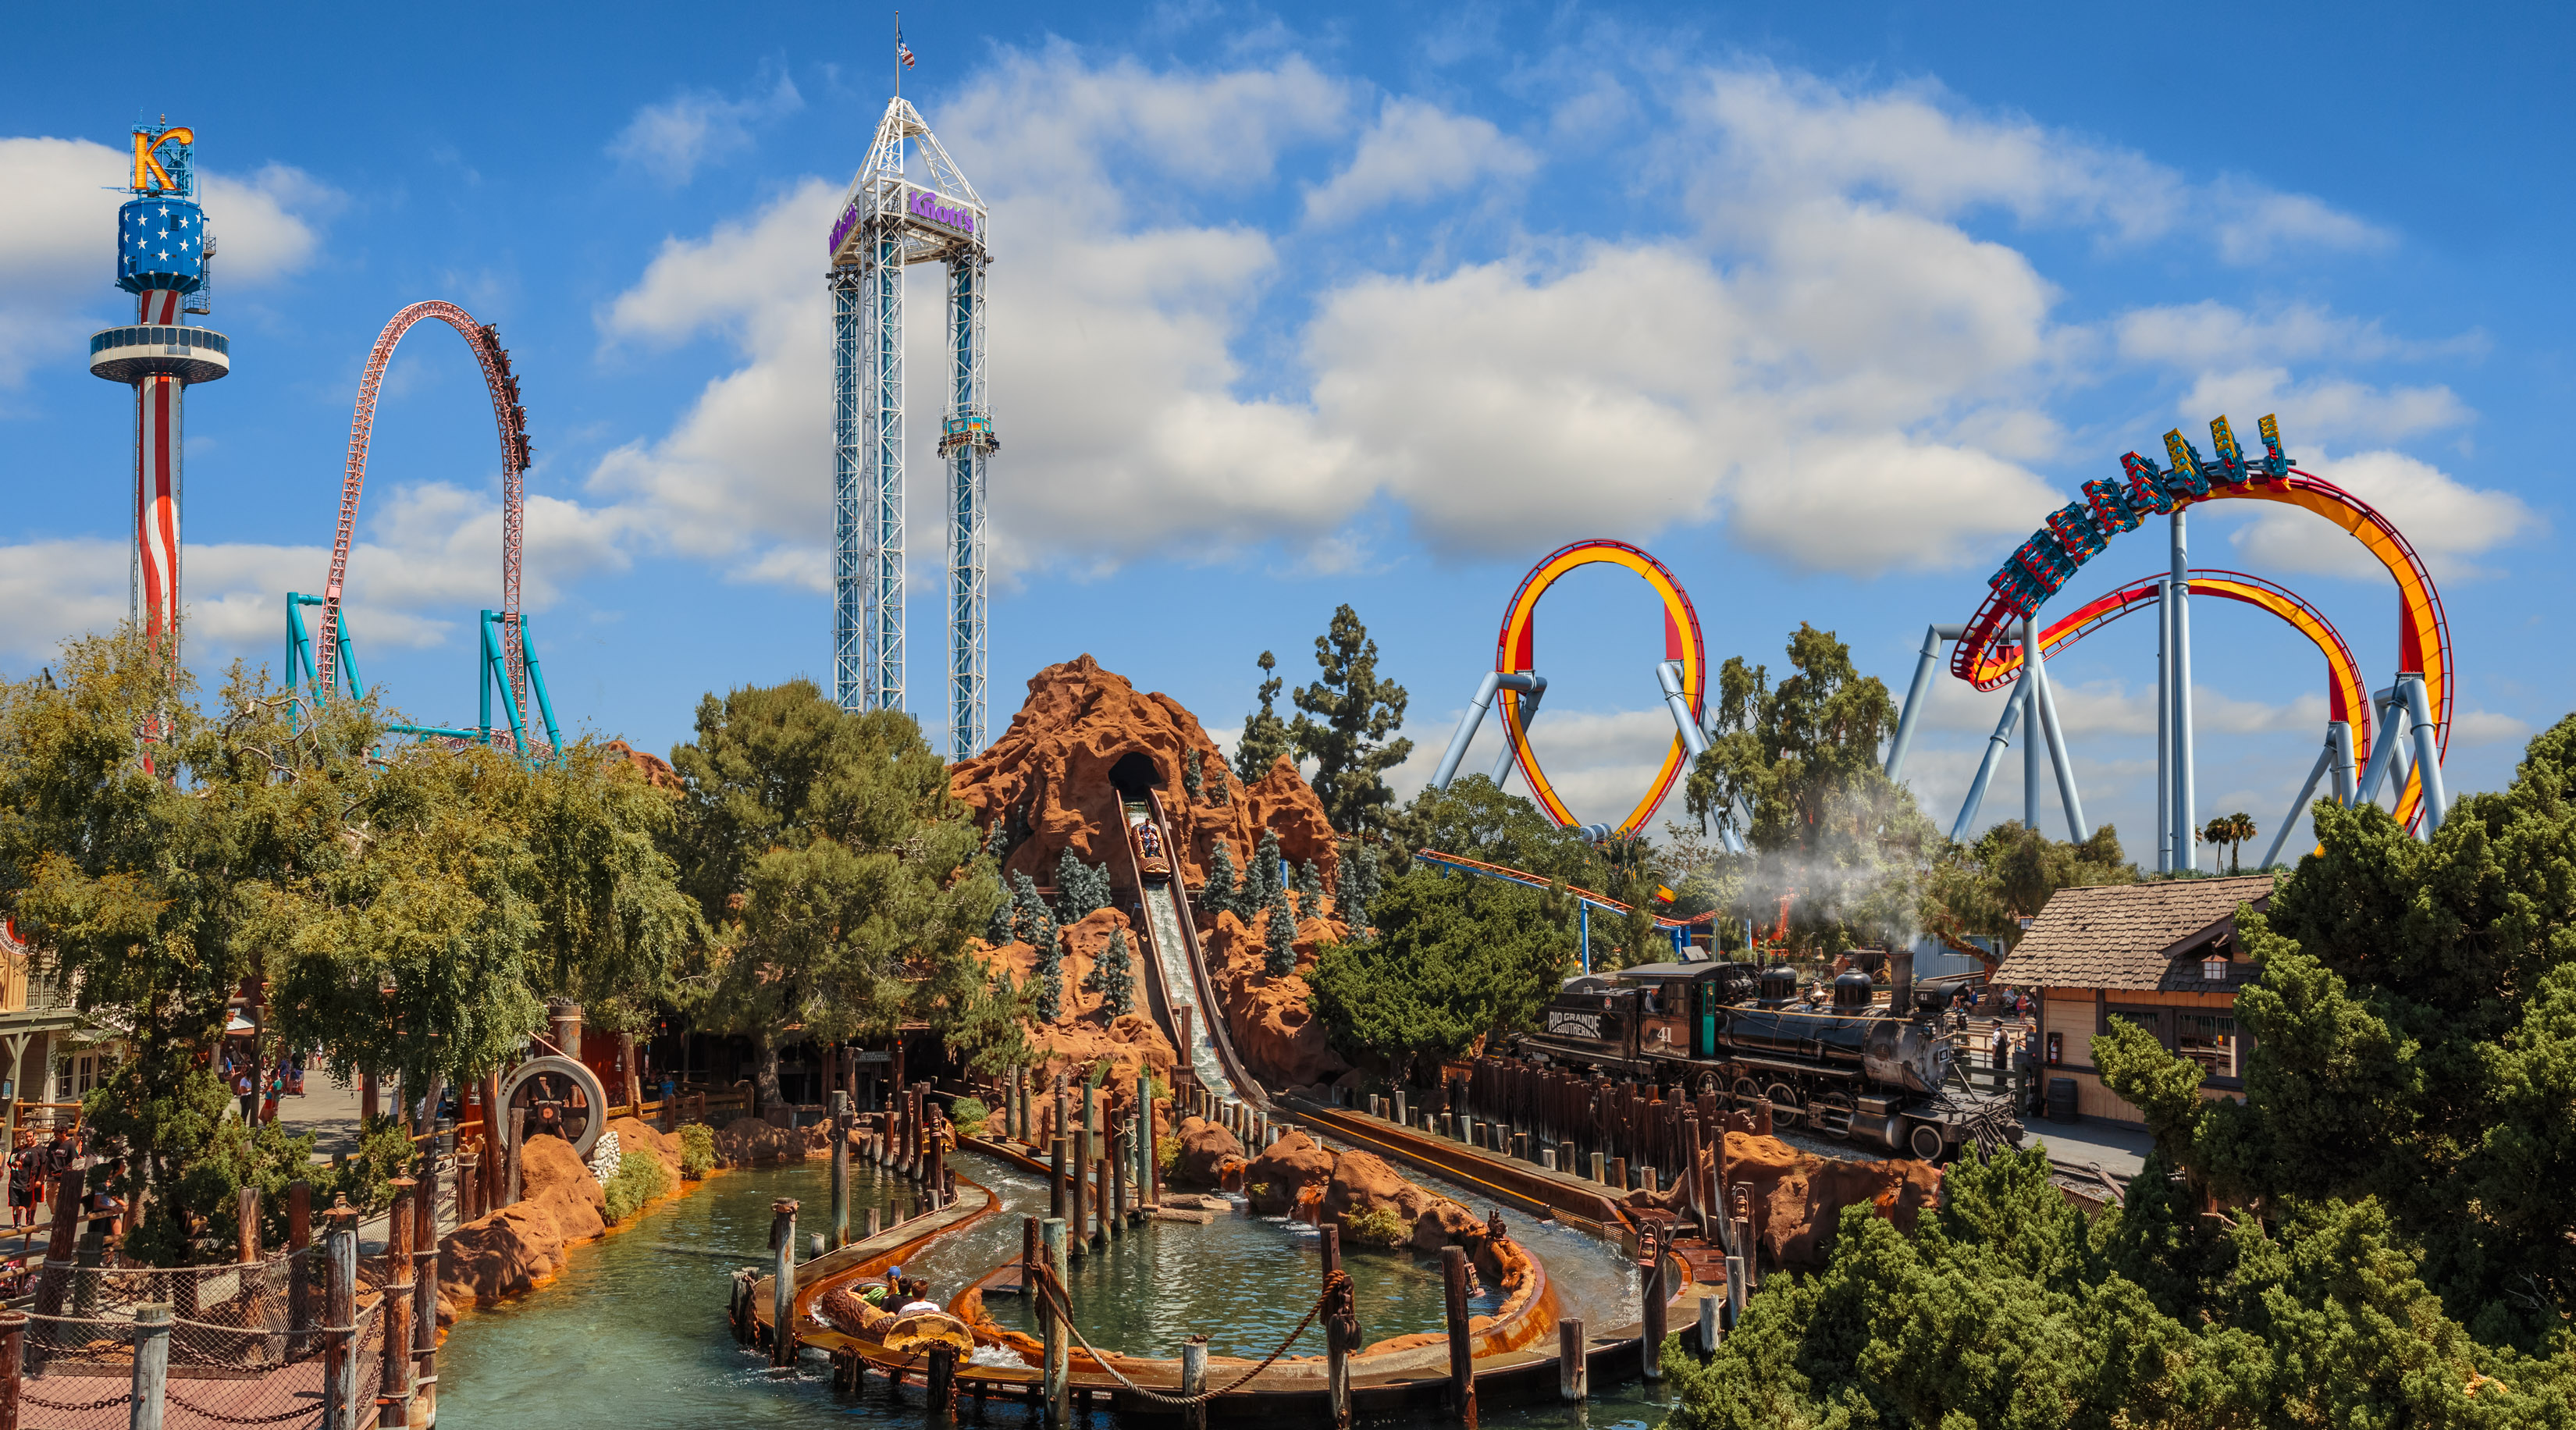 If you're looking for active vacation ideas in Southern California, don't miss Knott's Berry Farm! They have something for everyone!